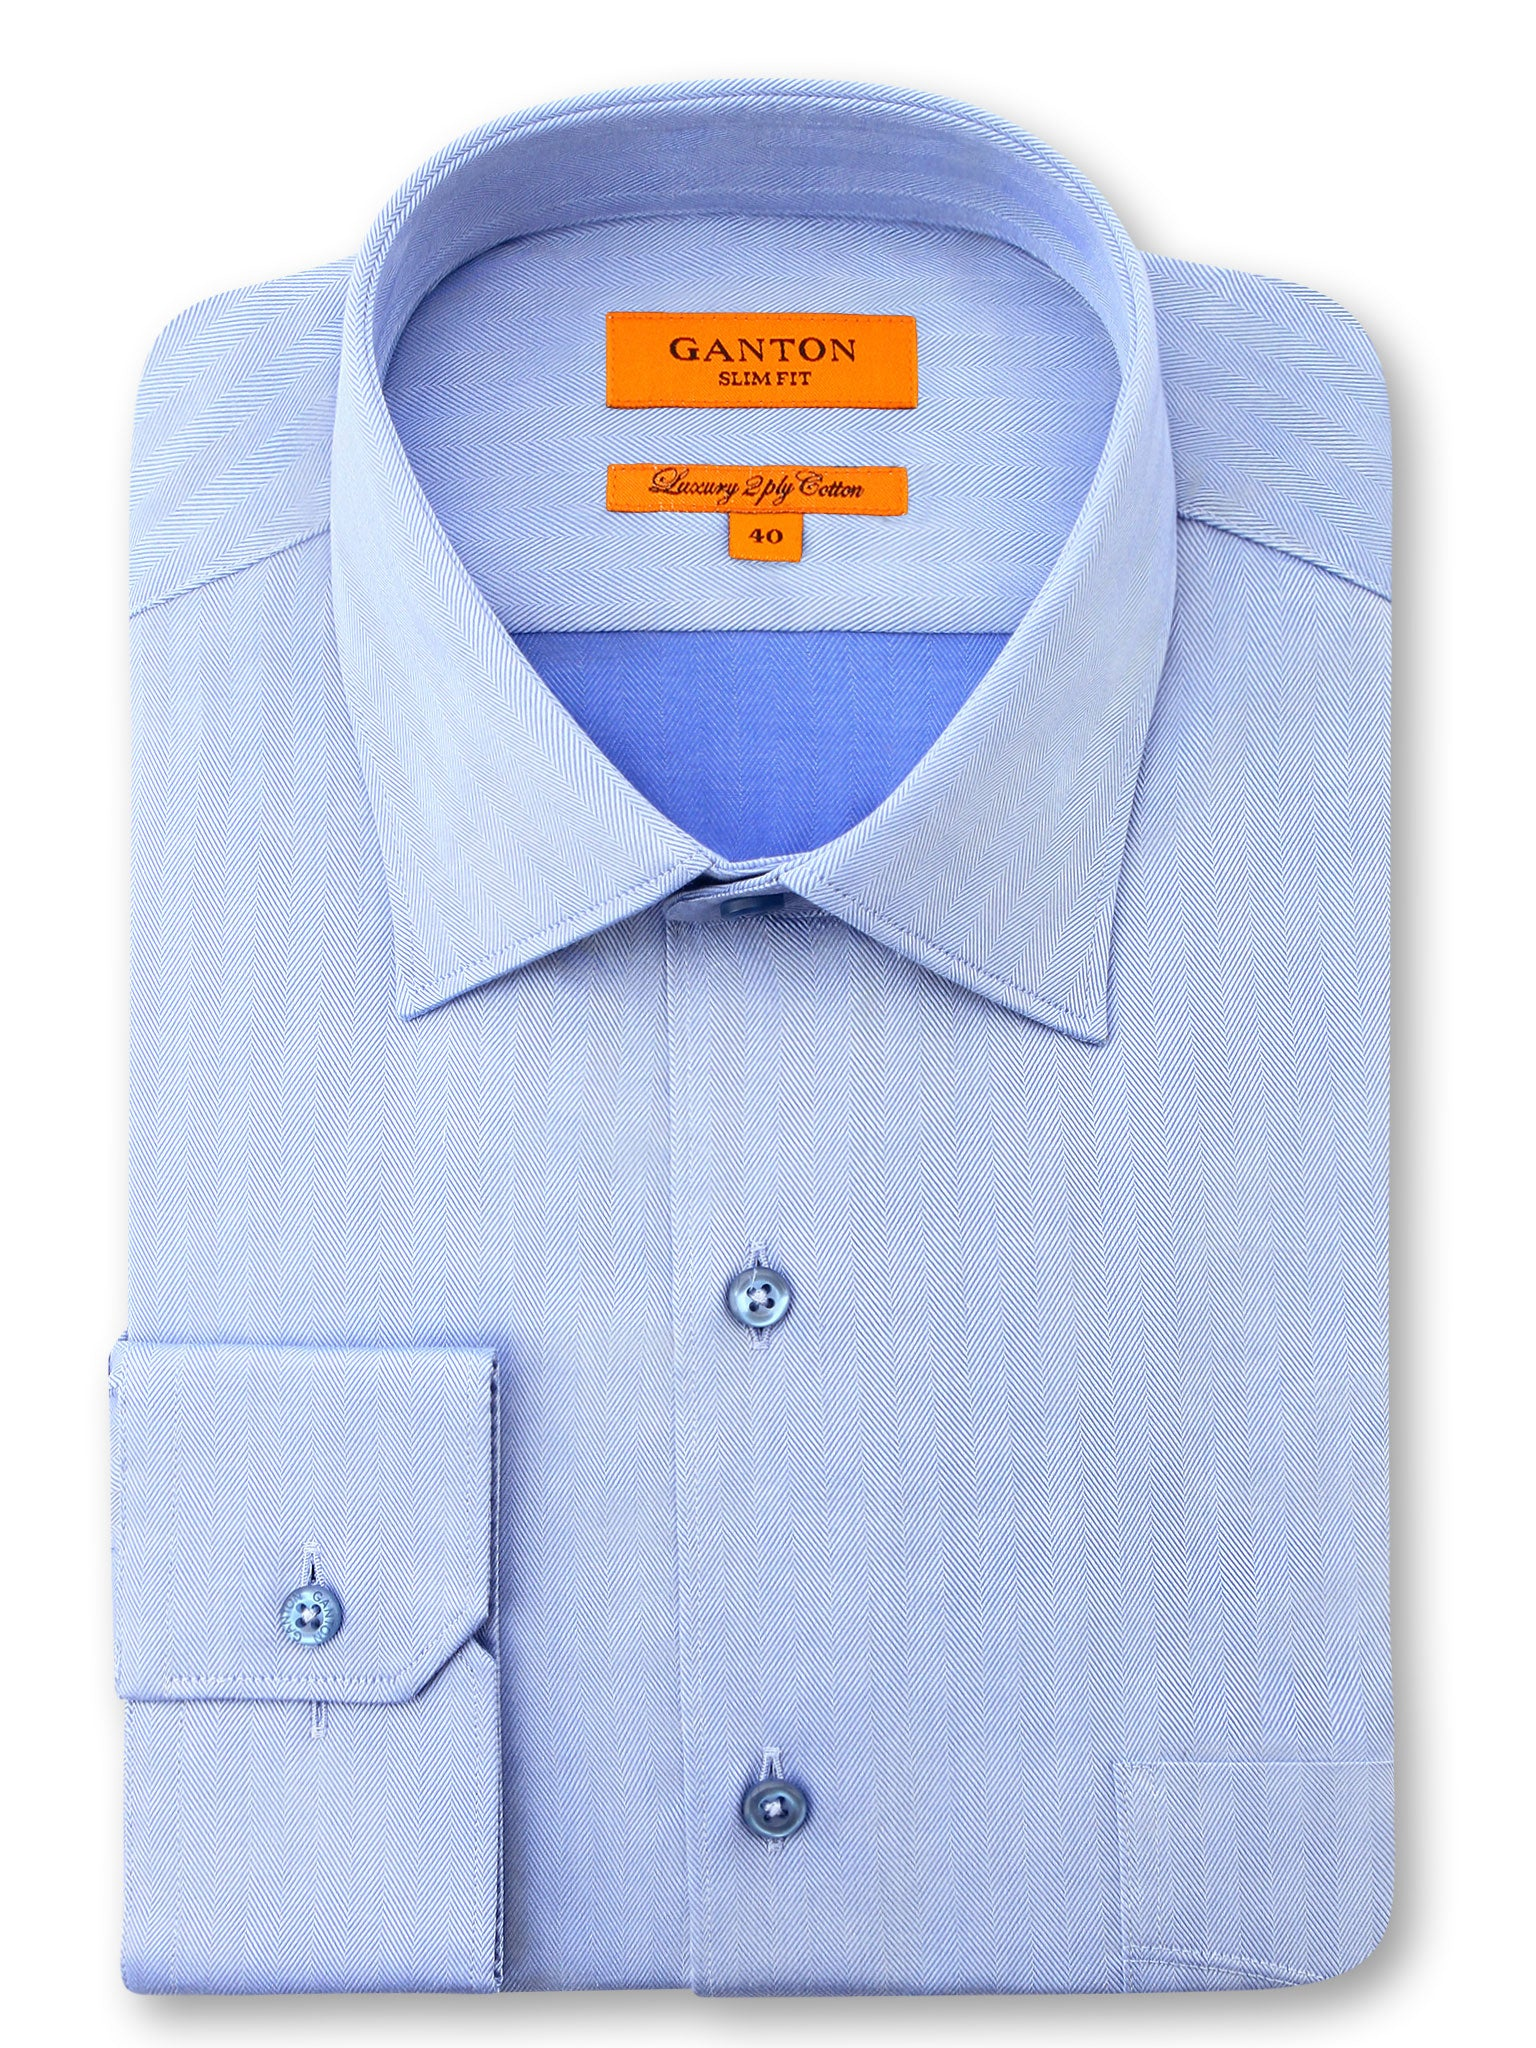 Mid Blue Textured Slim Fit Gibson Luxury 2 Ply Cotton Shirt